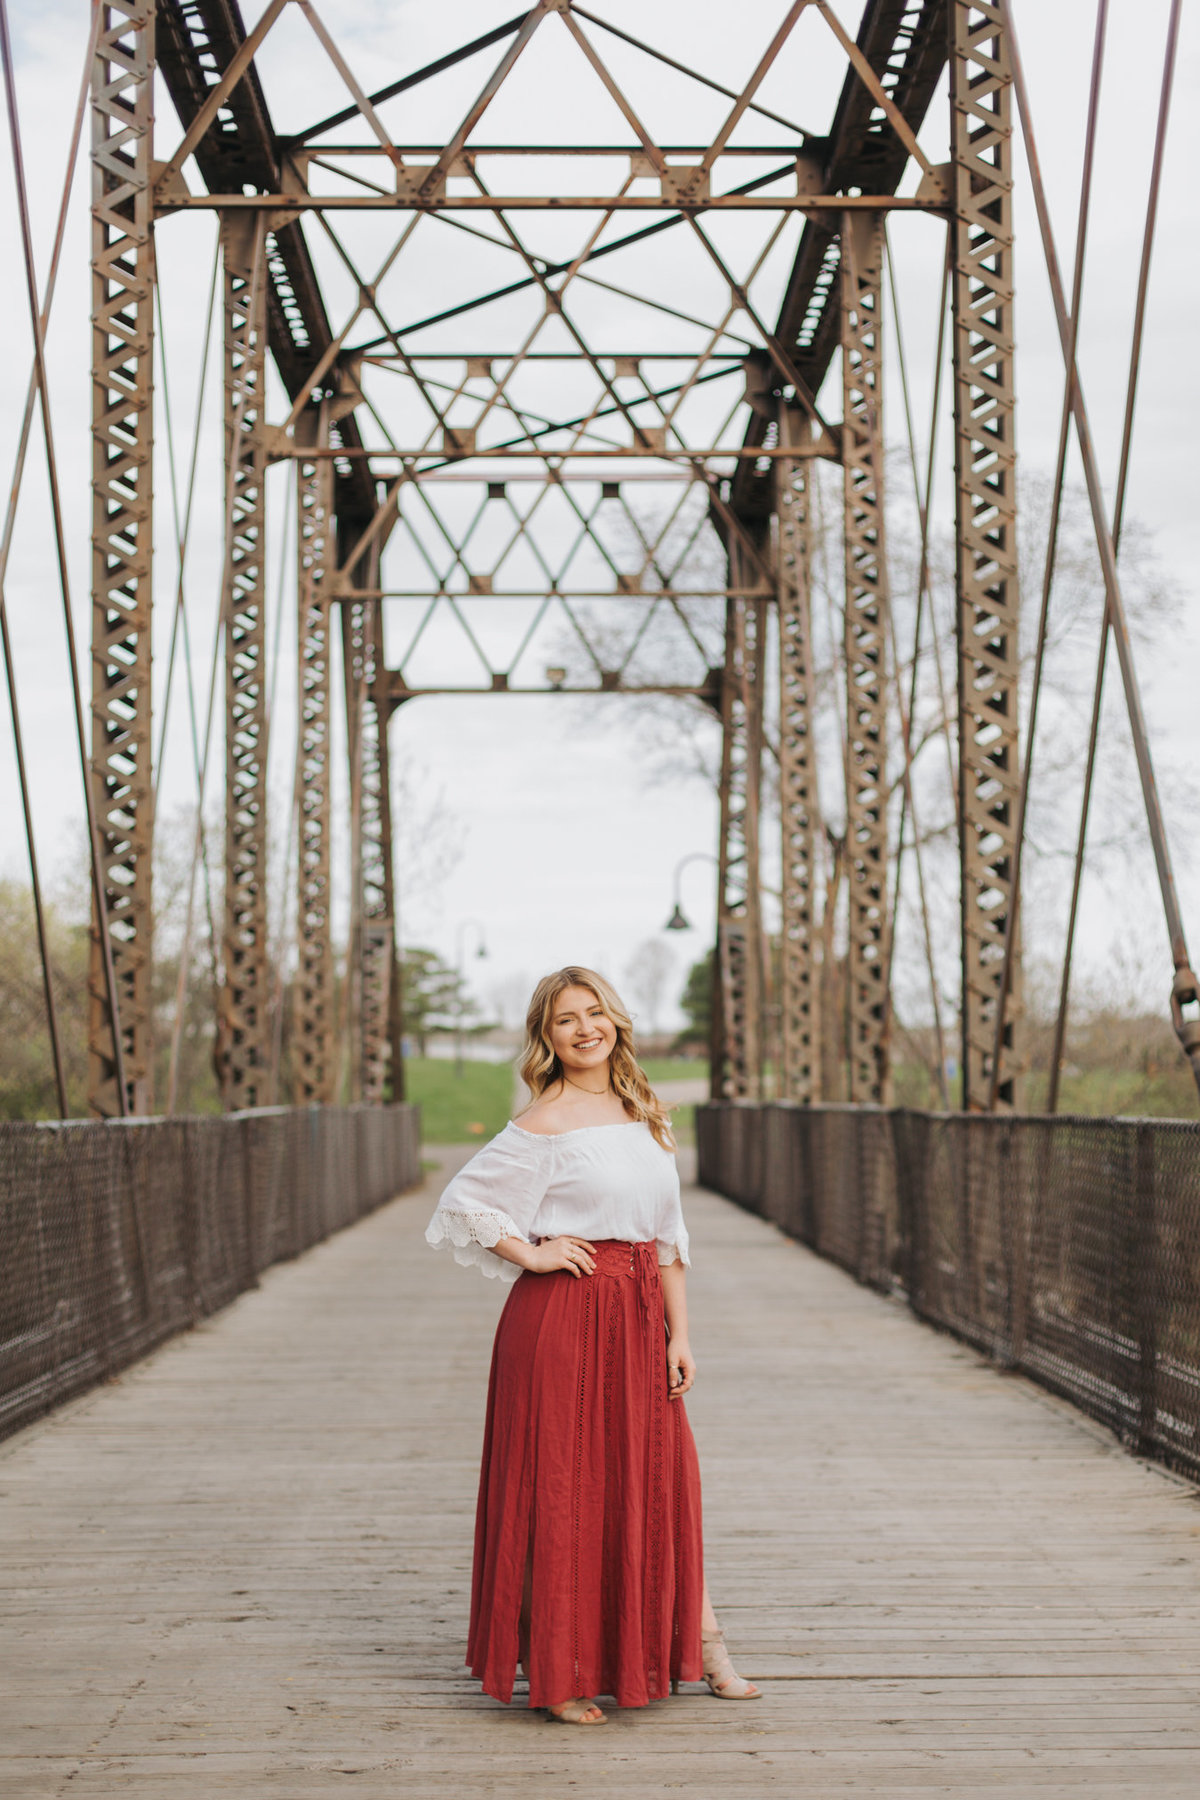 Amanda-Teichert-Sarah-Chacos-Photography-Minneapolis-Senior-Photographer-24